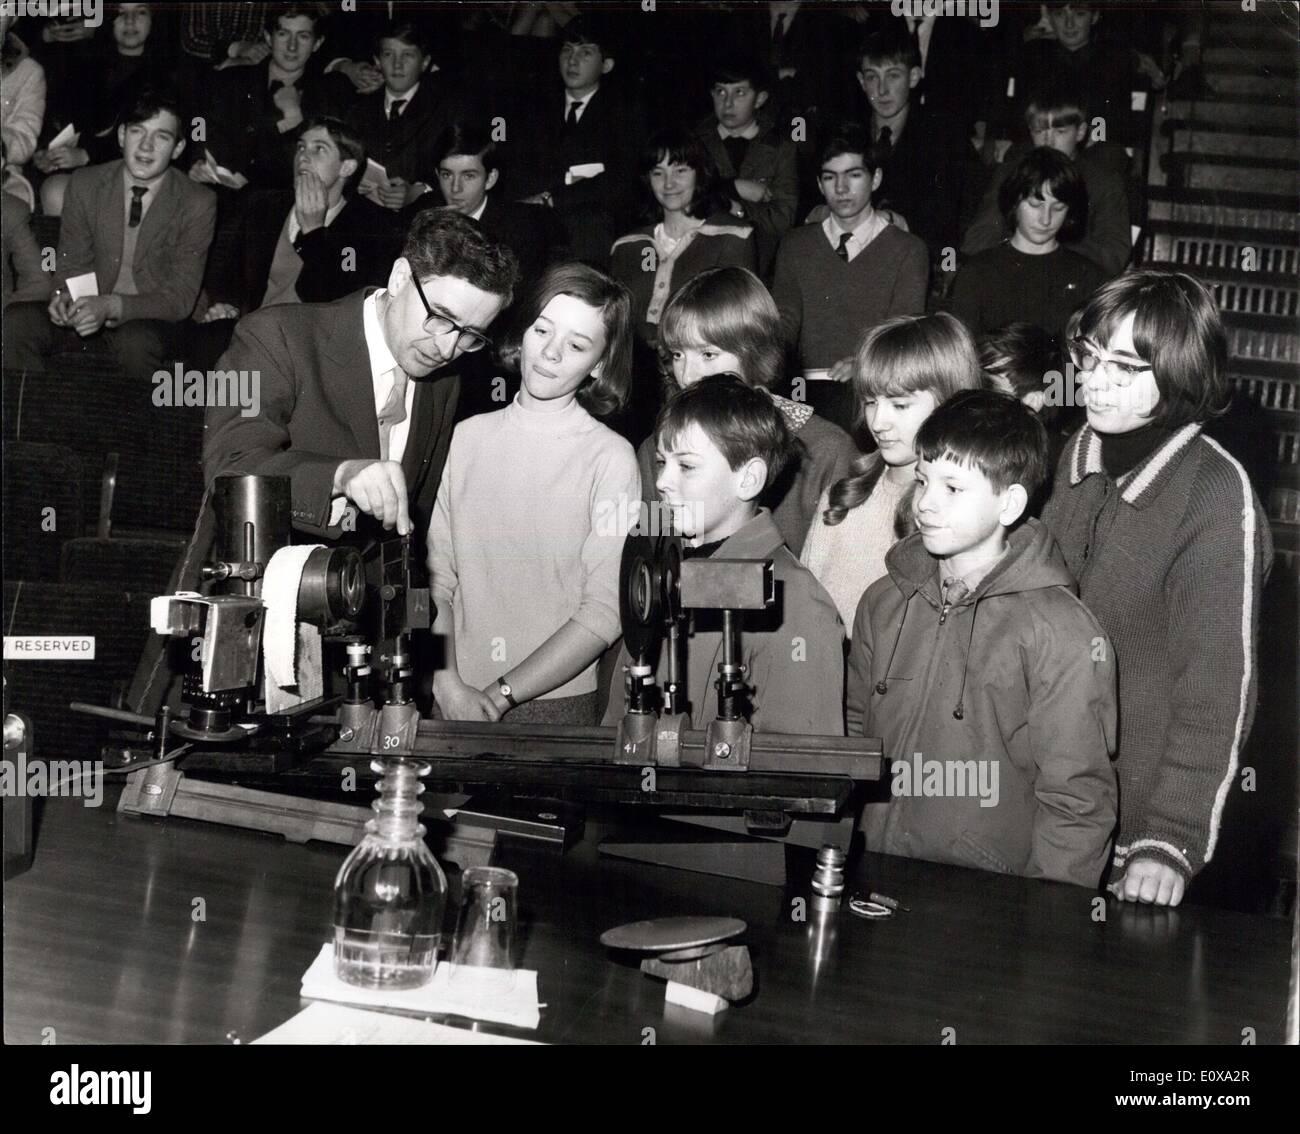 Dec. 28, 1965 - Christmas lectures at the Royal Institution: The first of a course of six lectures, the subject of which is ''The Exploration of the Universe' - by Sir Bernard Lovell, O.B.E., F.R.S., and Professor F. Graham Smith, M.A., of the Nuffield Radio Astronomy laboratories, Jodrell Bank and by Professor Martin Ryle, M.A., F.R.S. and Dr. A. Hewish, of the Mullard Radio Astronomy observatory. Cambridge, was held today at the Royal institution, Albemarle-Street. Photo Shows Dr. A - Stock Image